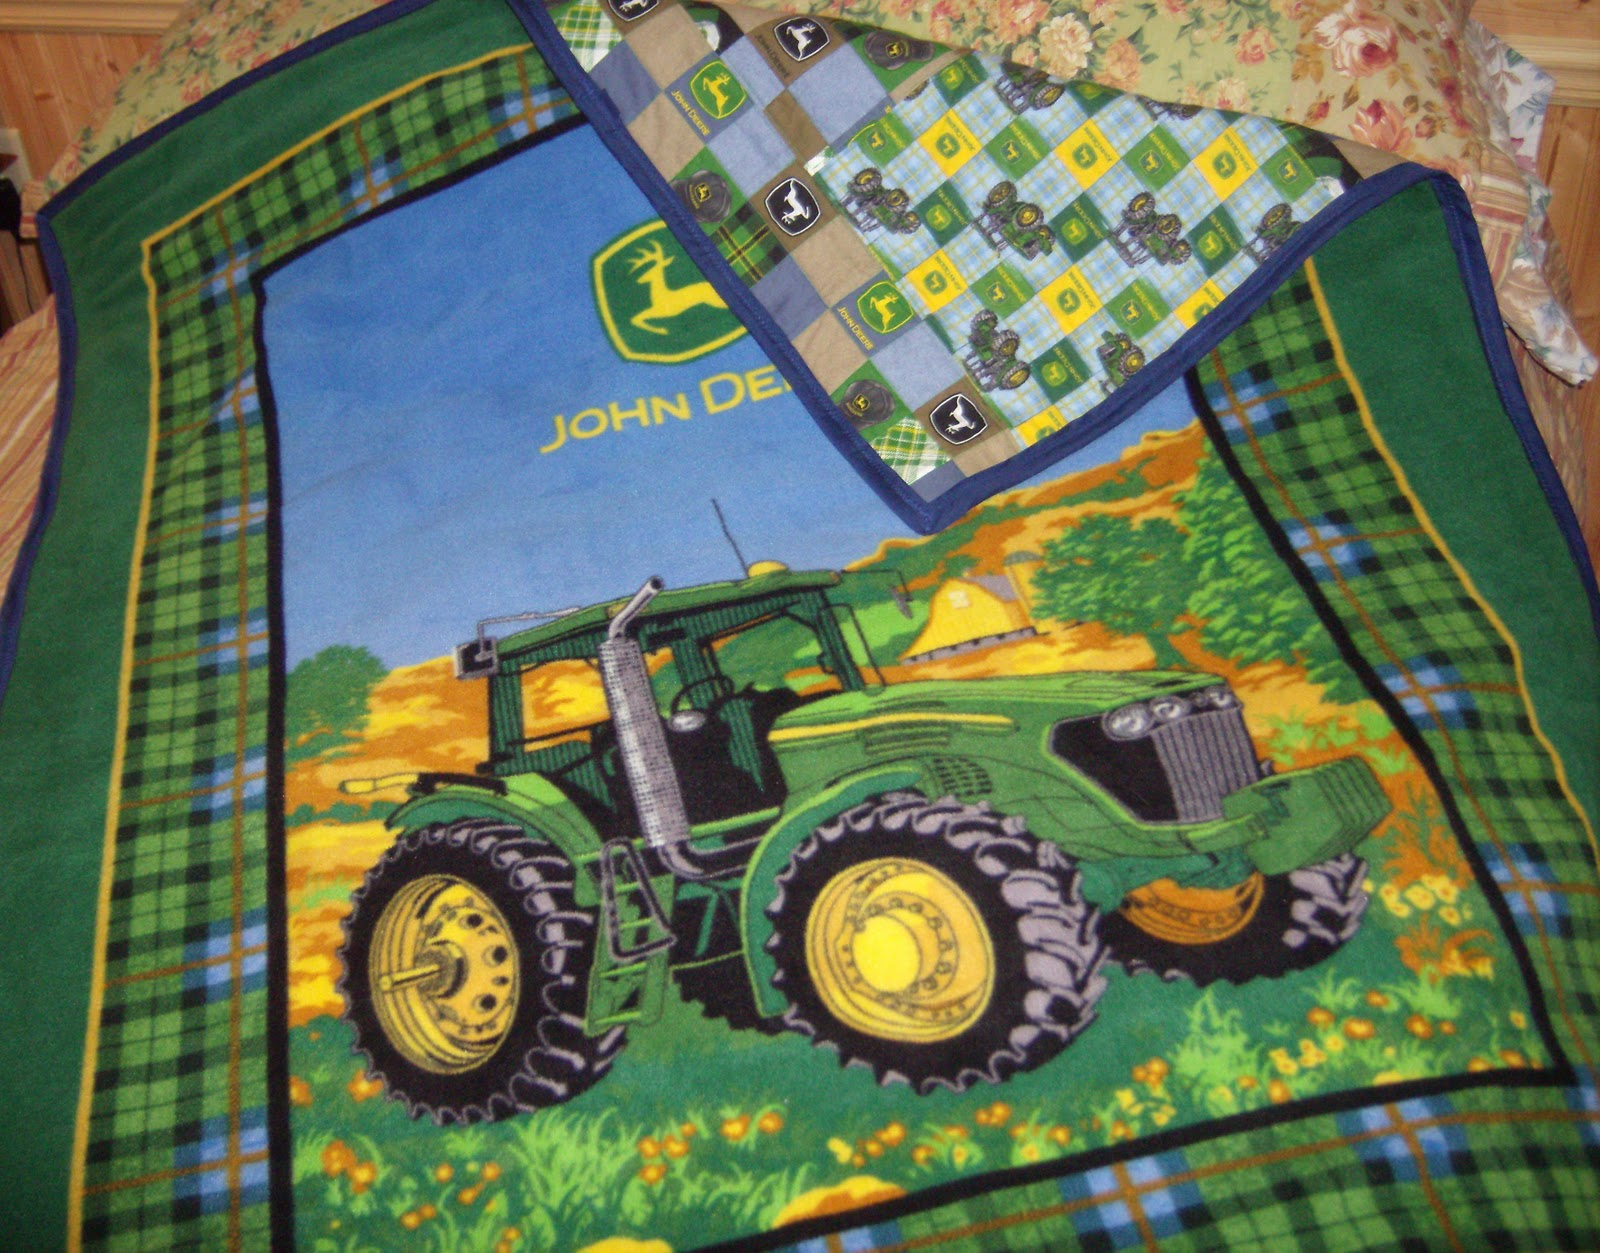 John Deere Embroidery Designs Collections : John deer embroidery « origami